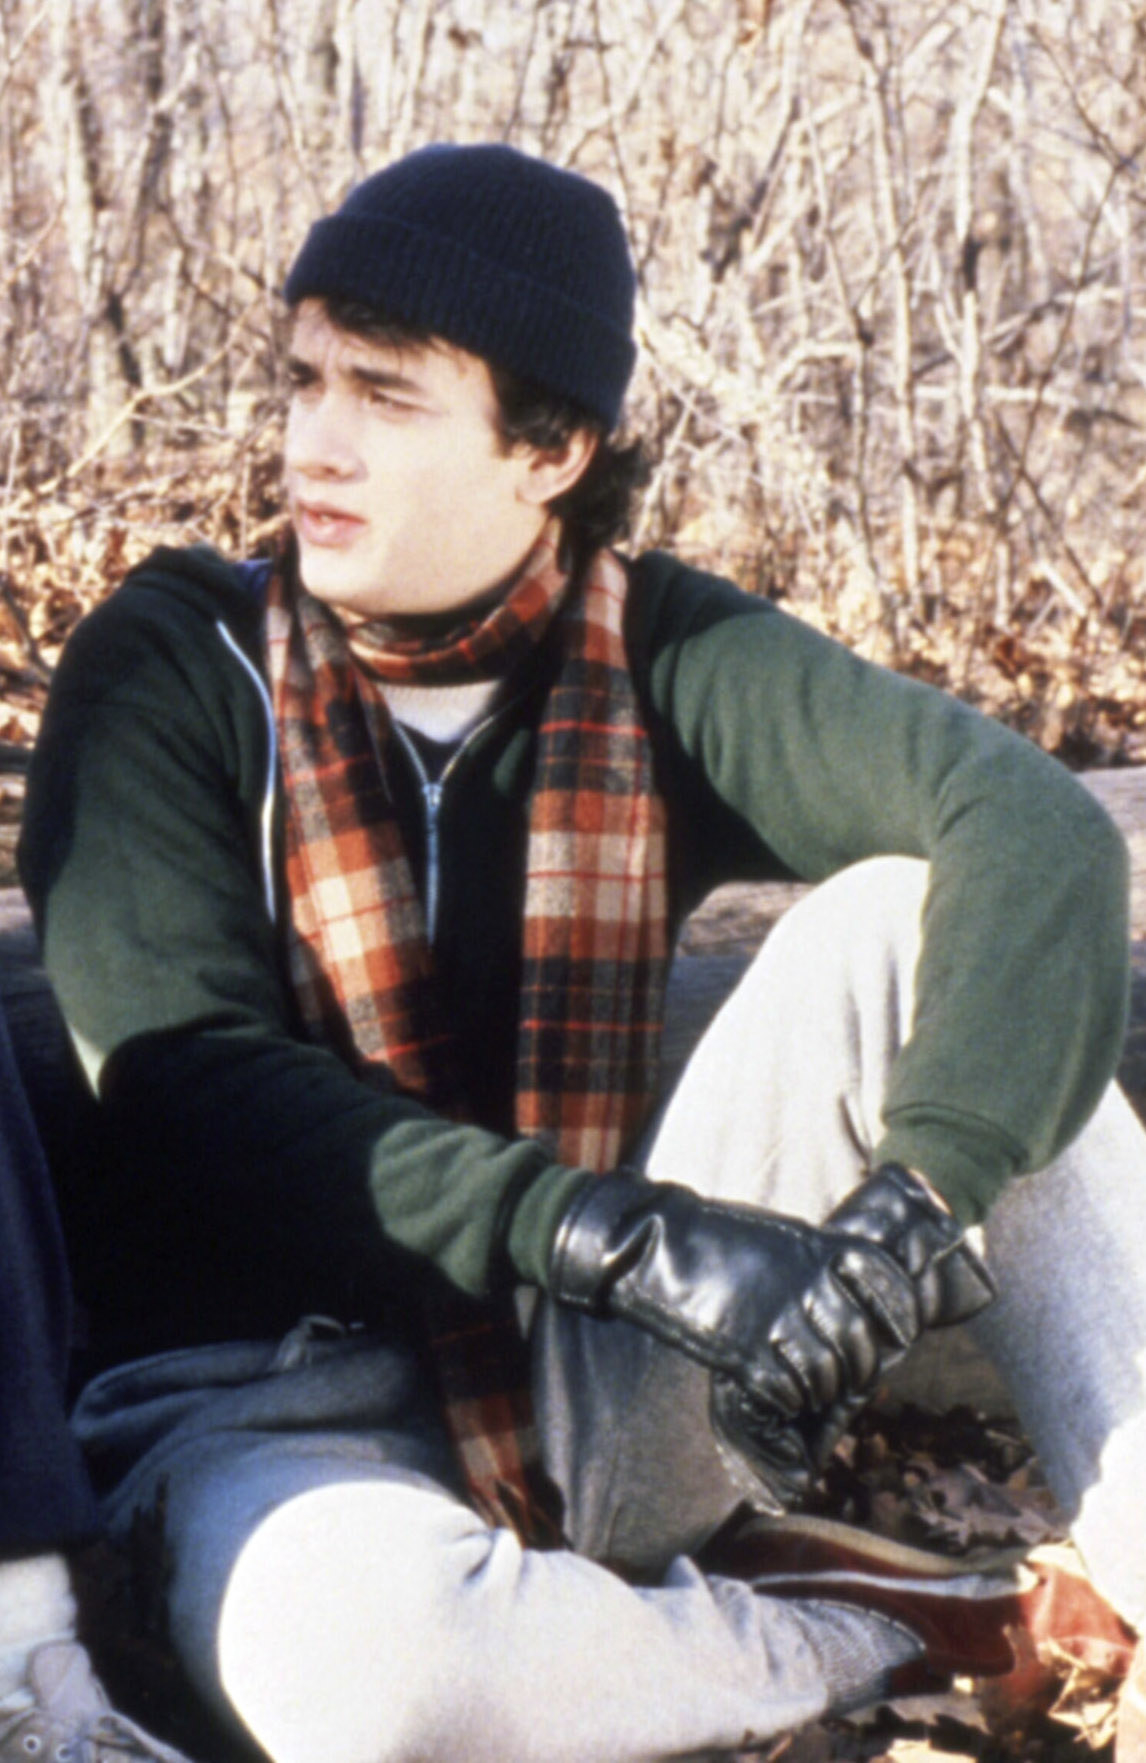 Tom Hanks kneeling down wearing sweatpants, a coat, and hat in the fall